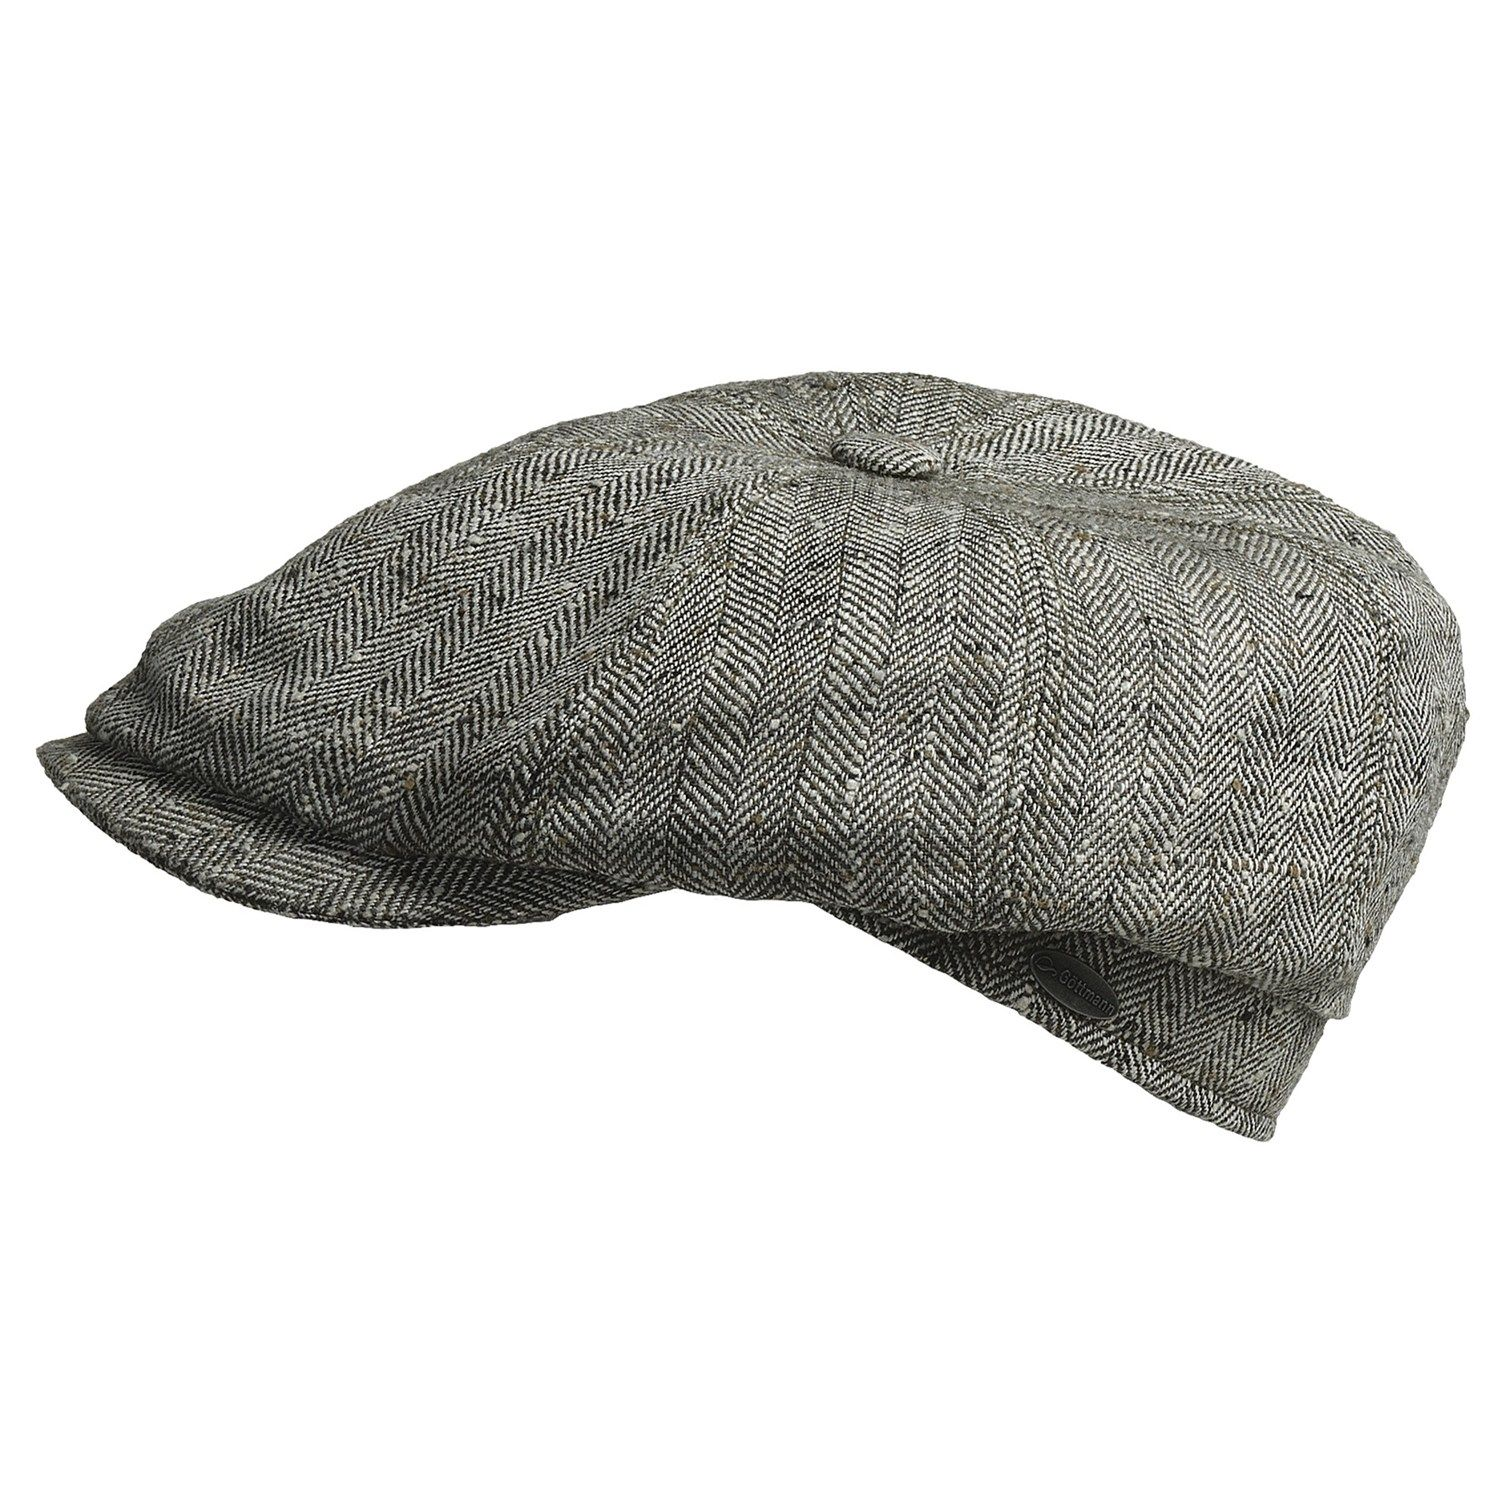 83d7c307a33 Gottmann Kingston Driving Cap - Silk (For Men) in 13 Grey